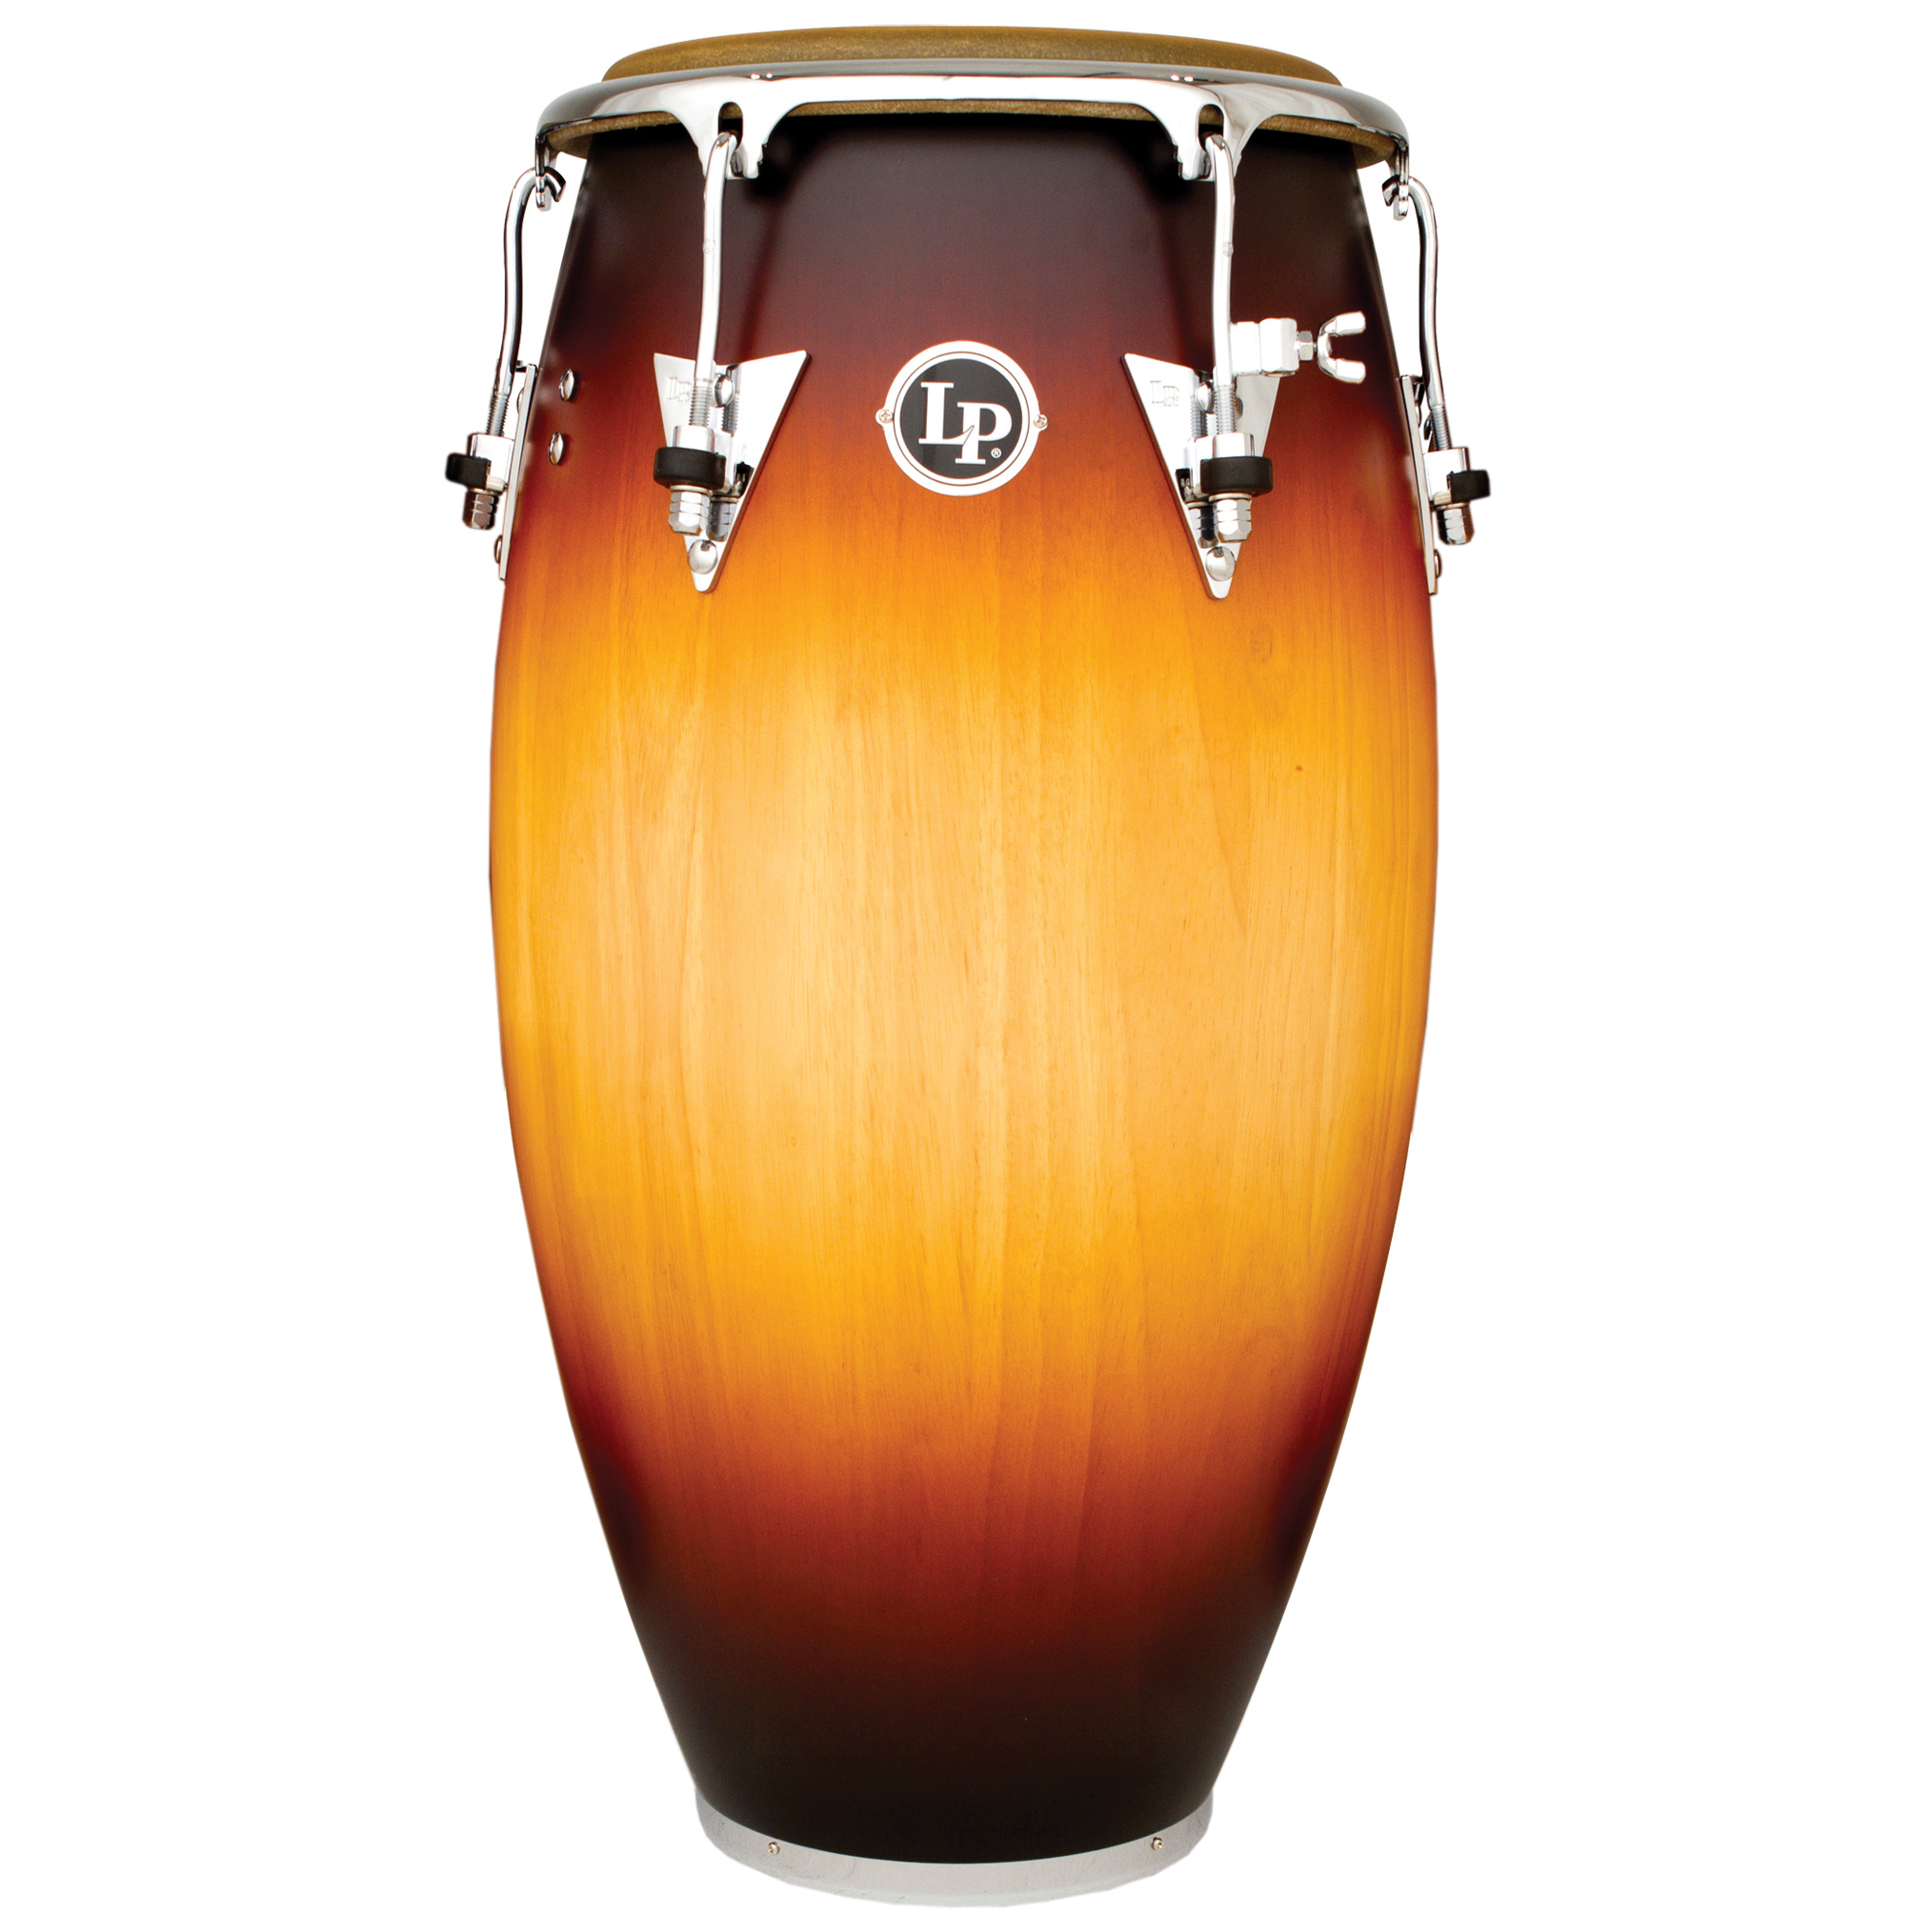 Latin Conga Drums Lp Gon Bops Meinl Lone Star Percussion